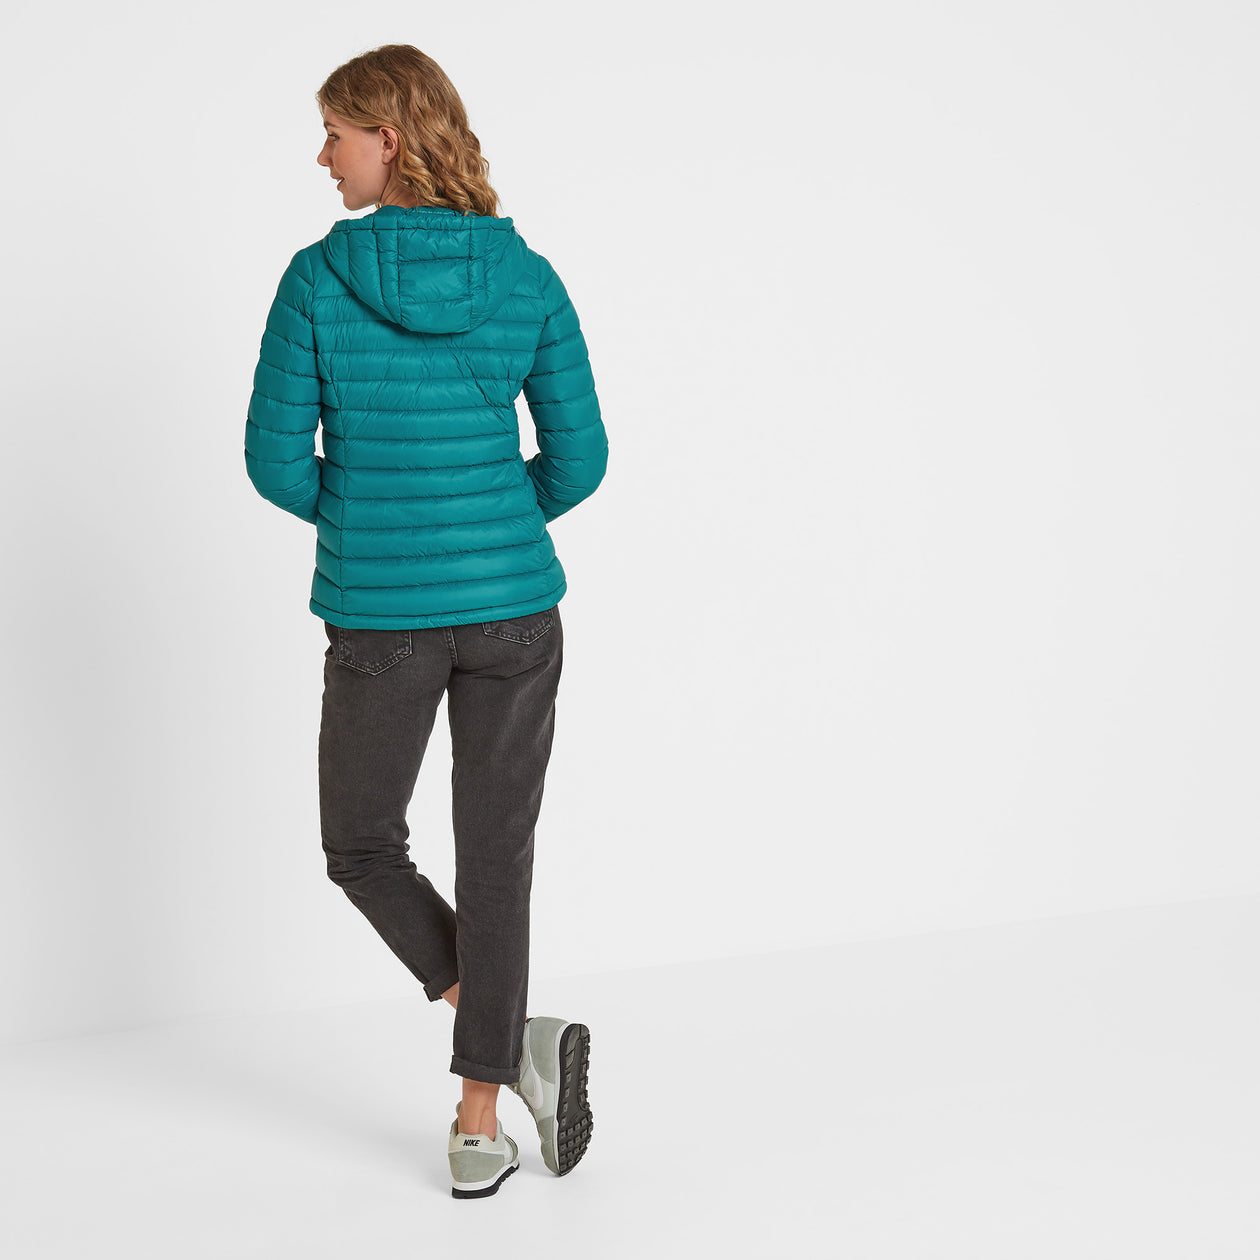 Drax Womens Hooded Down Jacket - Topaz image 4